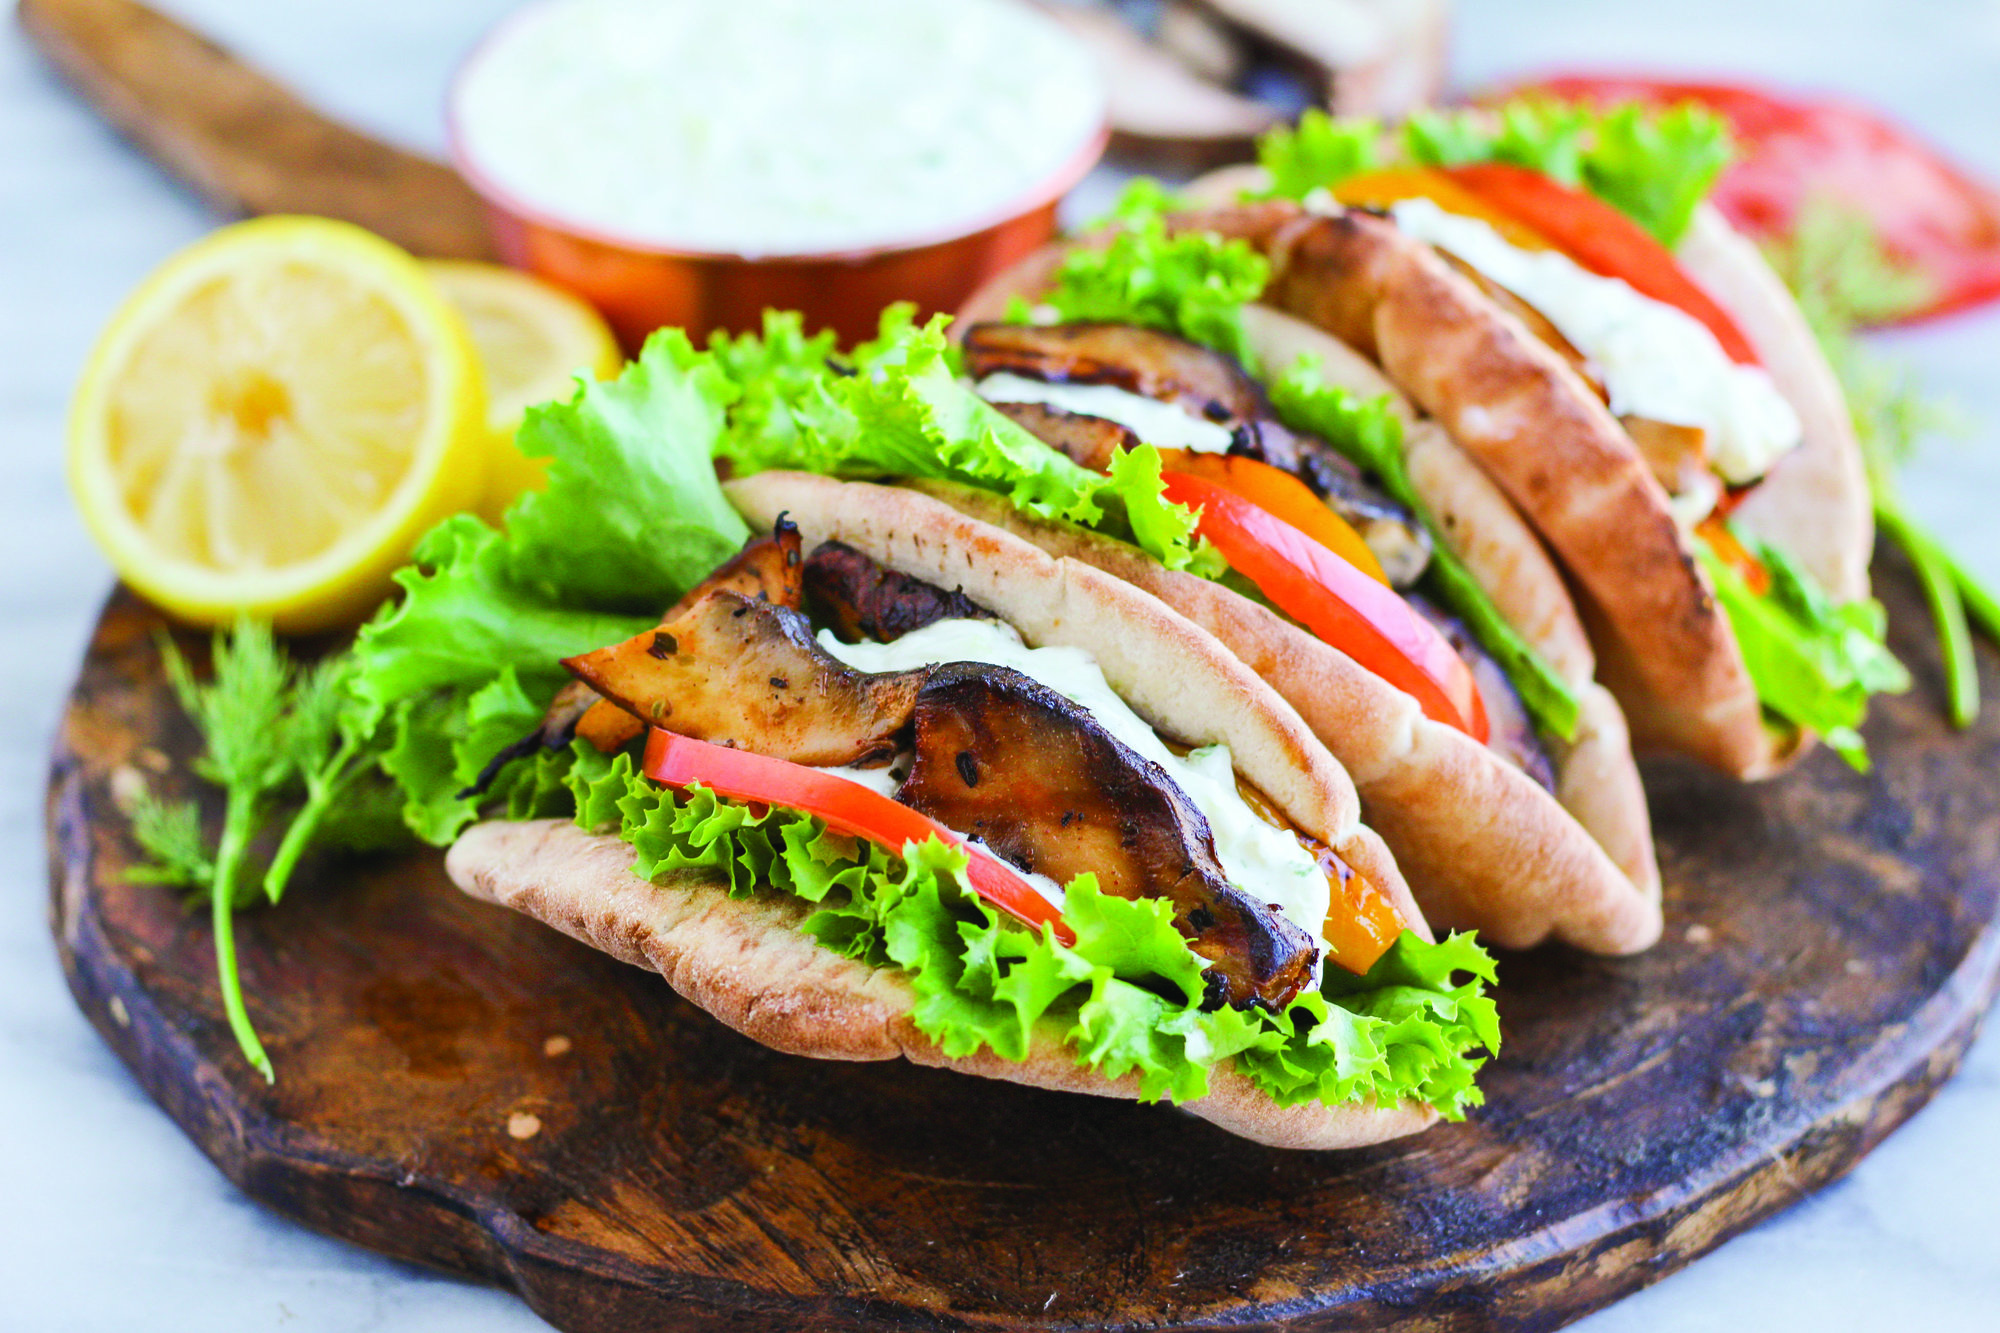 GRILLED PORTOBELLO GYROS WITH YOGURT DILL SAUCE